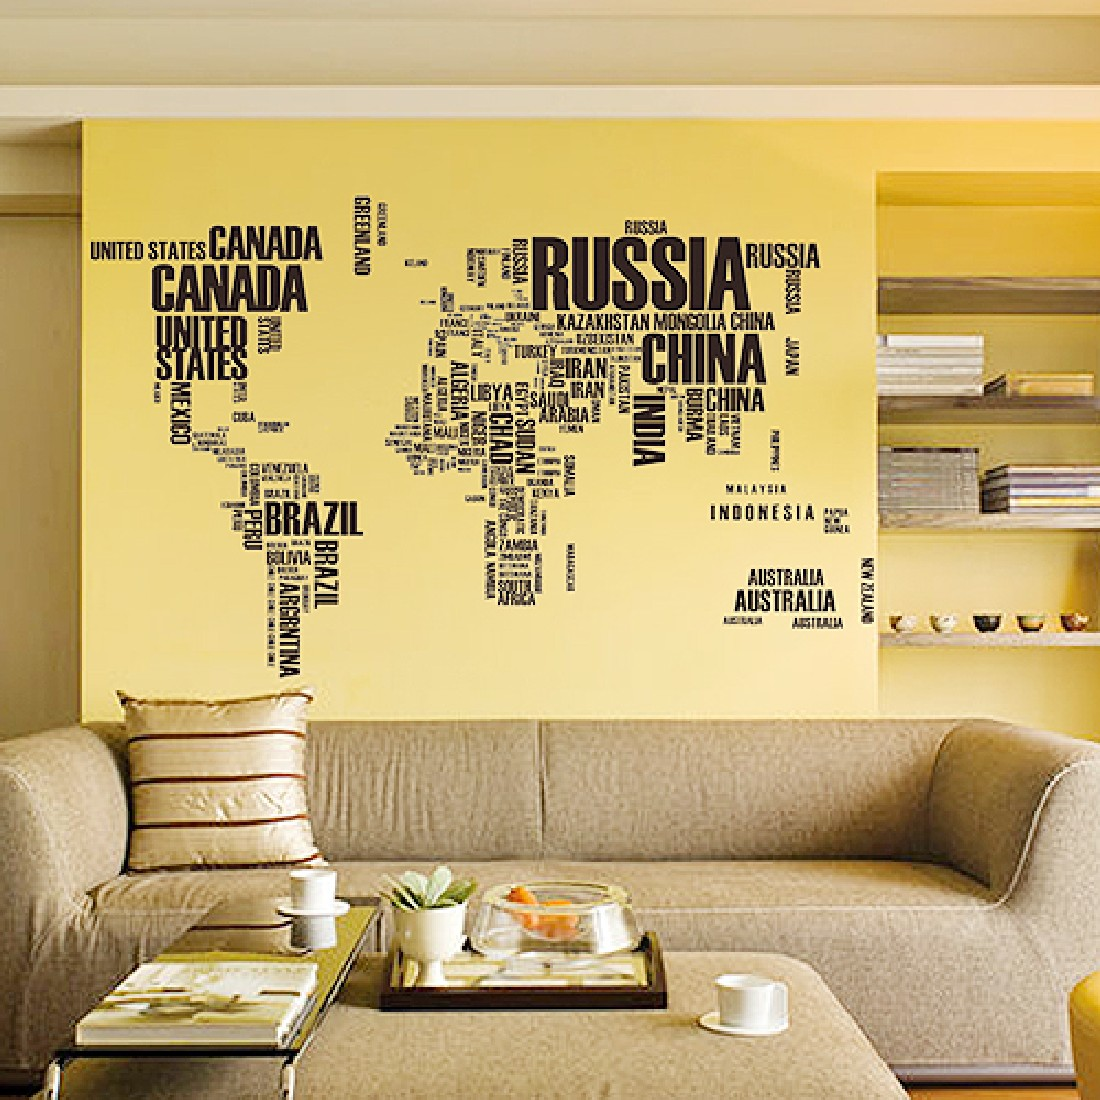 Perfect Words For Walls Ideas Gallery - Gallery Wall Art ...